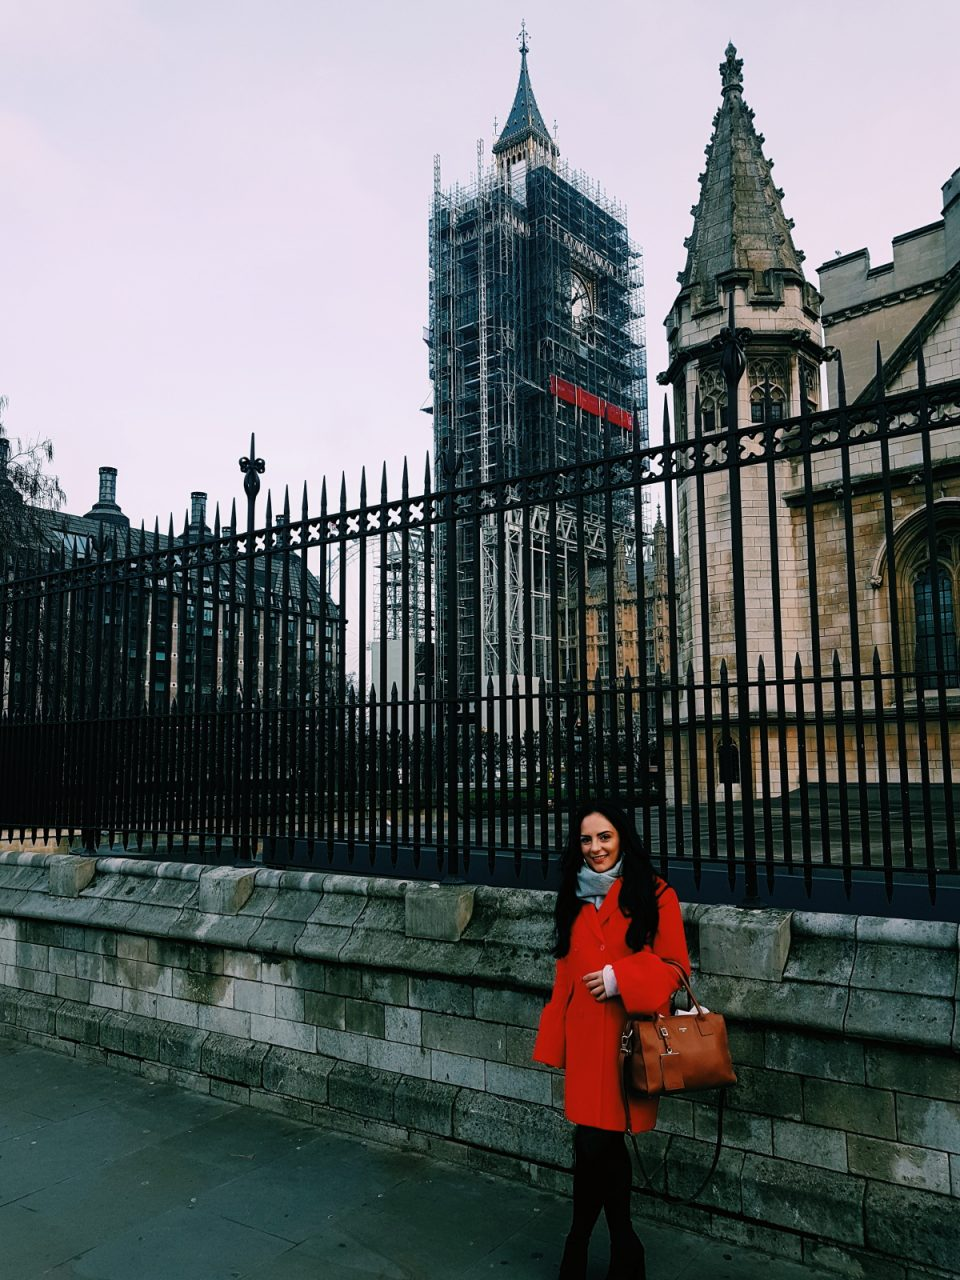 london-tipps-sightseeing-big-ben-englang-london